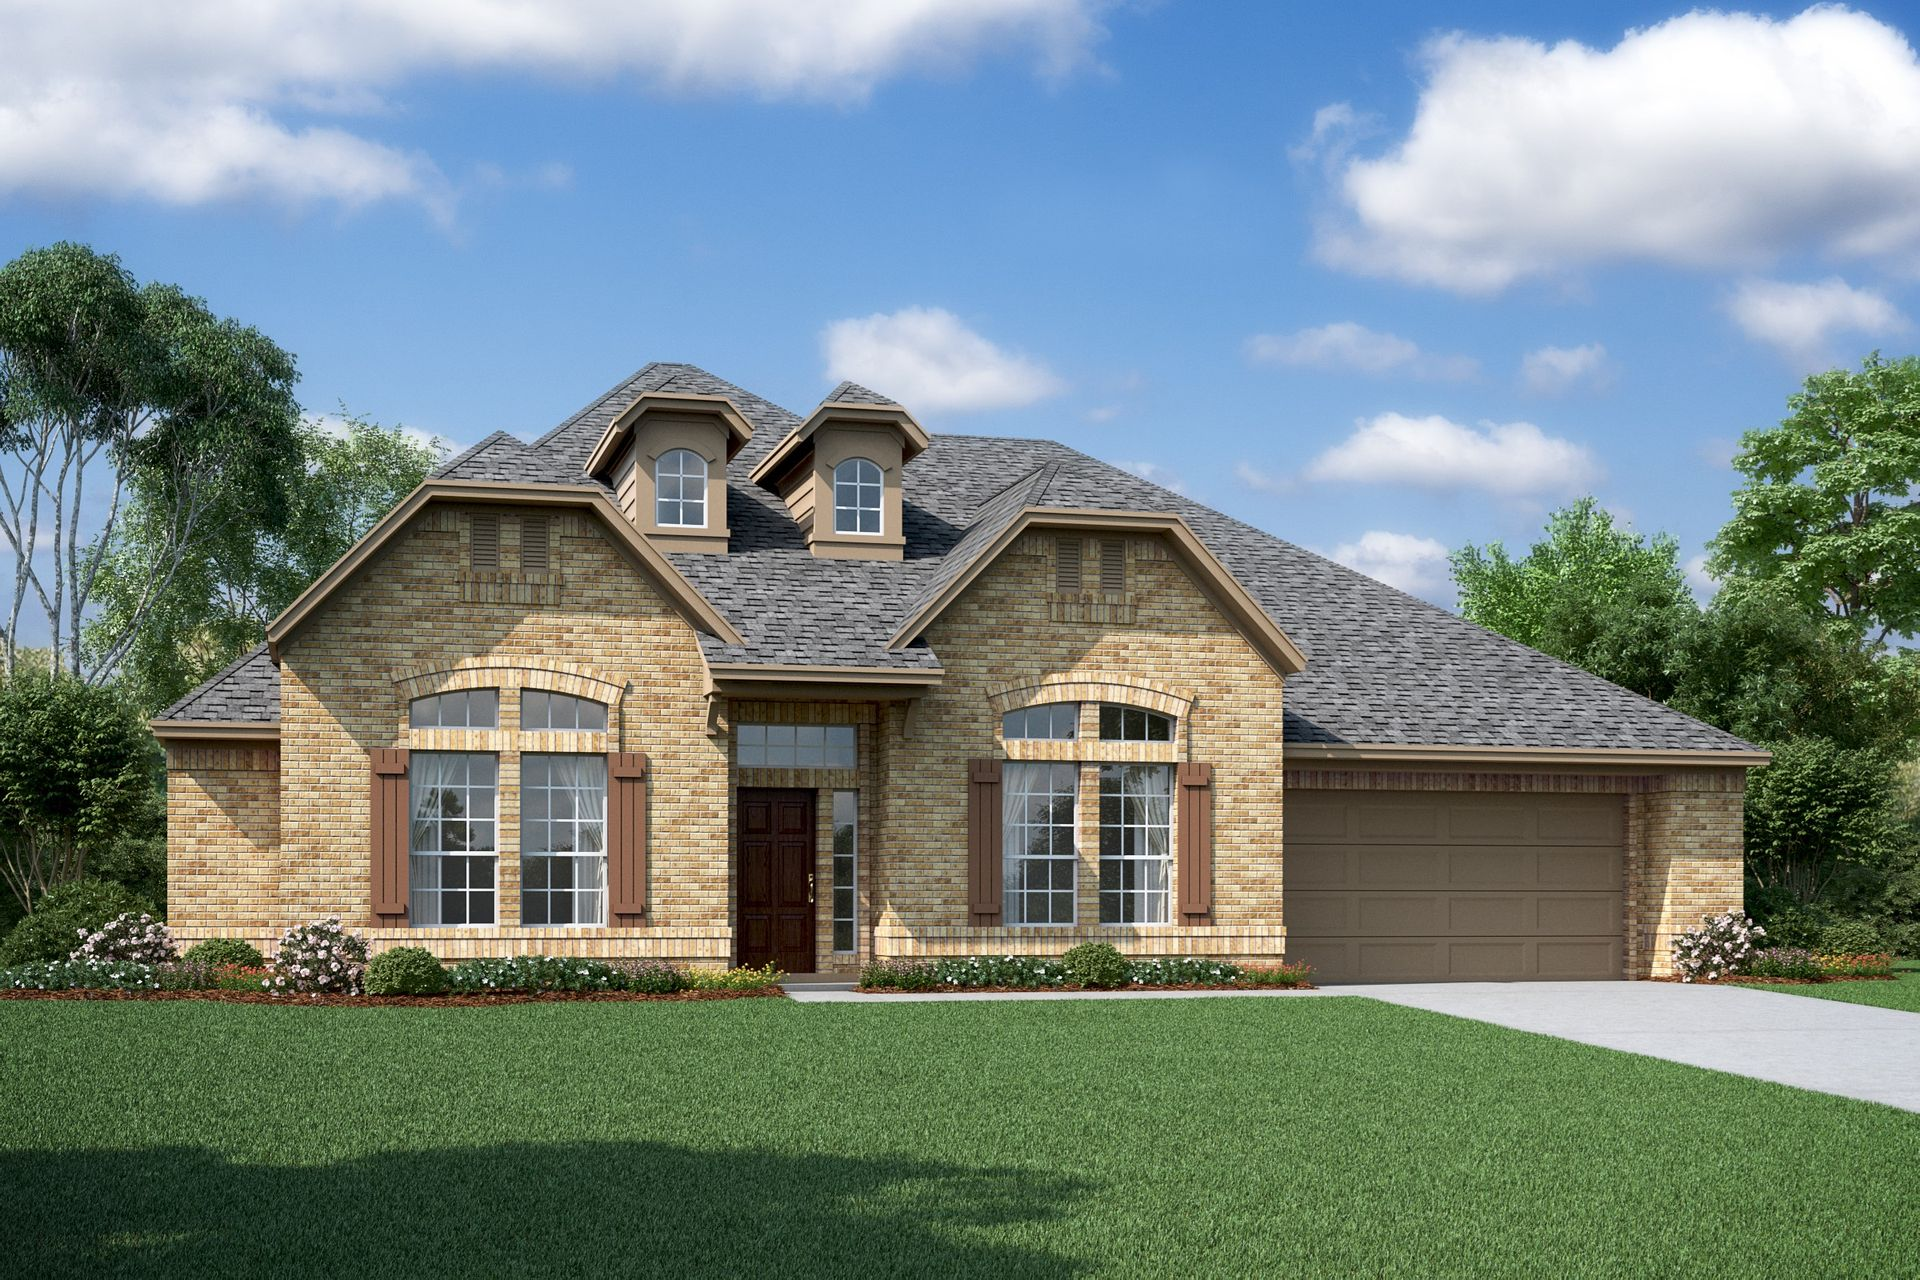 Hayden plan league city texas 77573 hayden plan at magnolia hayden plan league city texas 77573 hayden plan at magnolia creek by k hovnanian homes fandeluxe Image collections